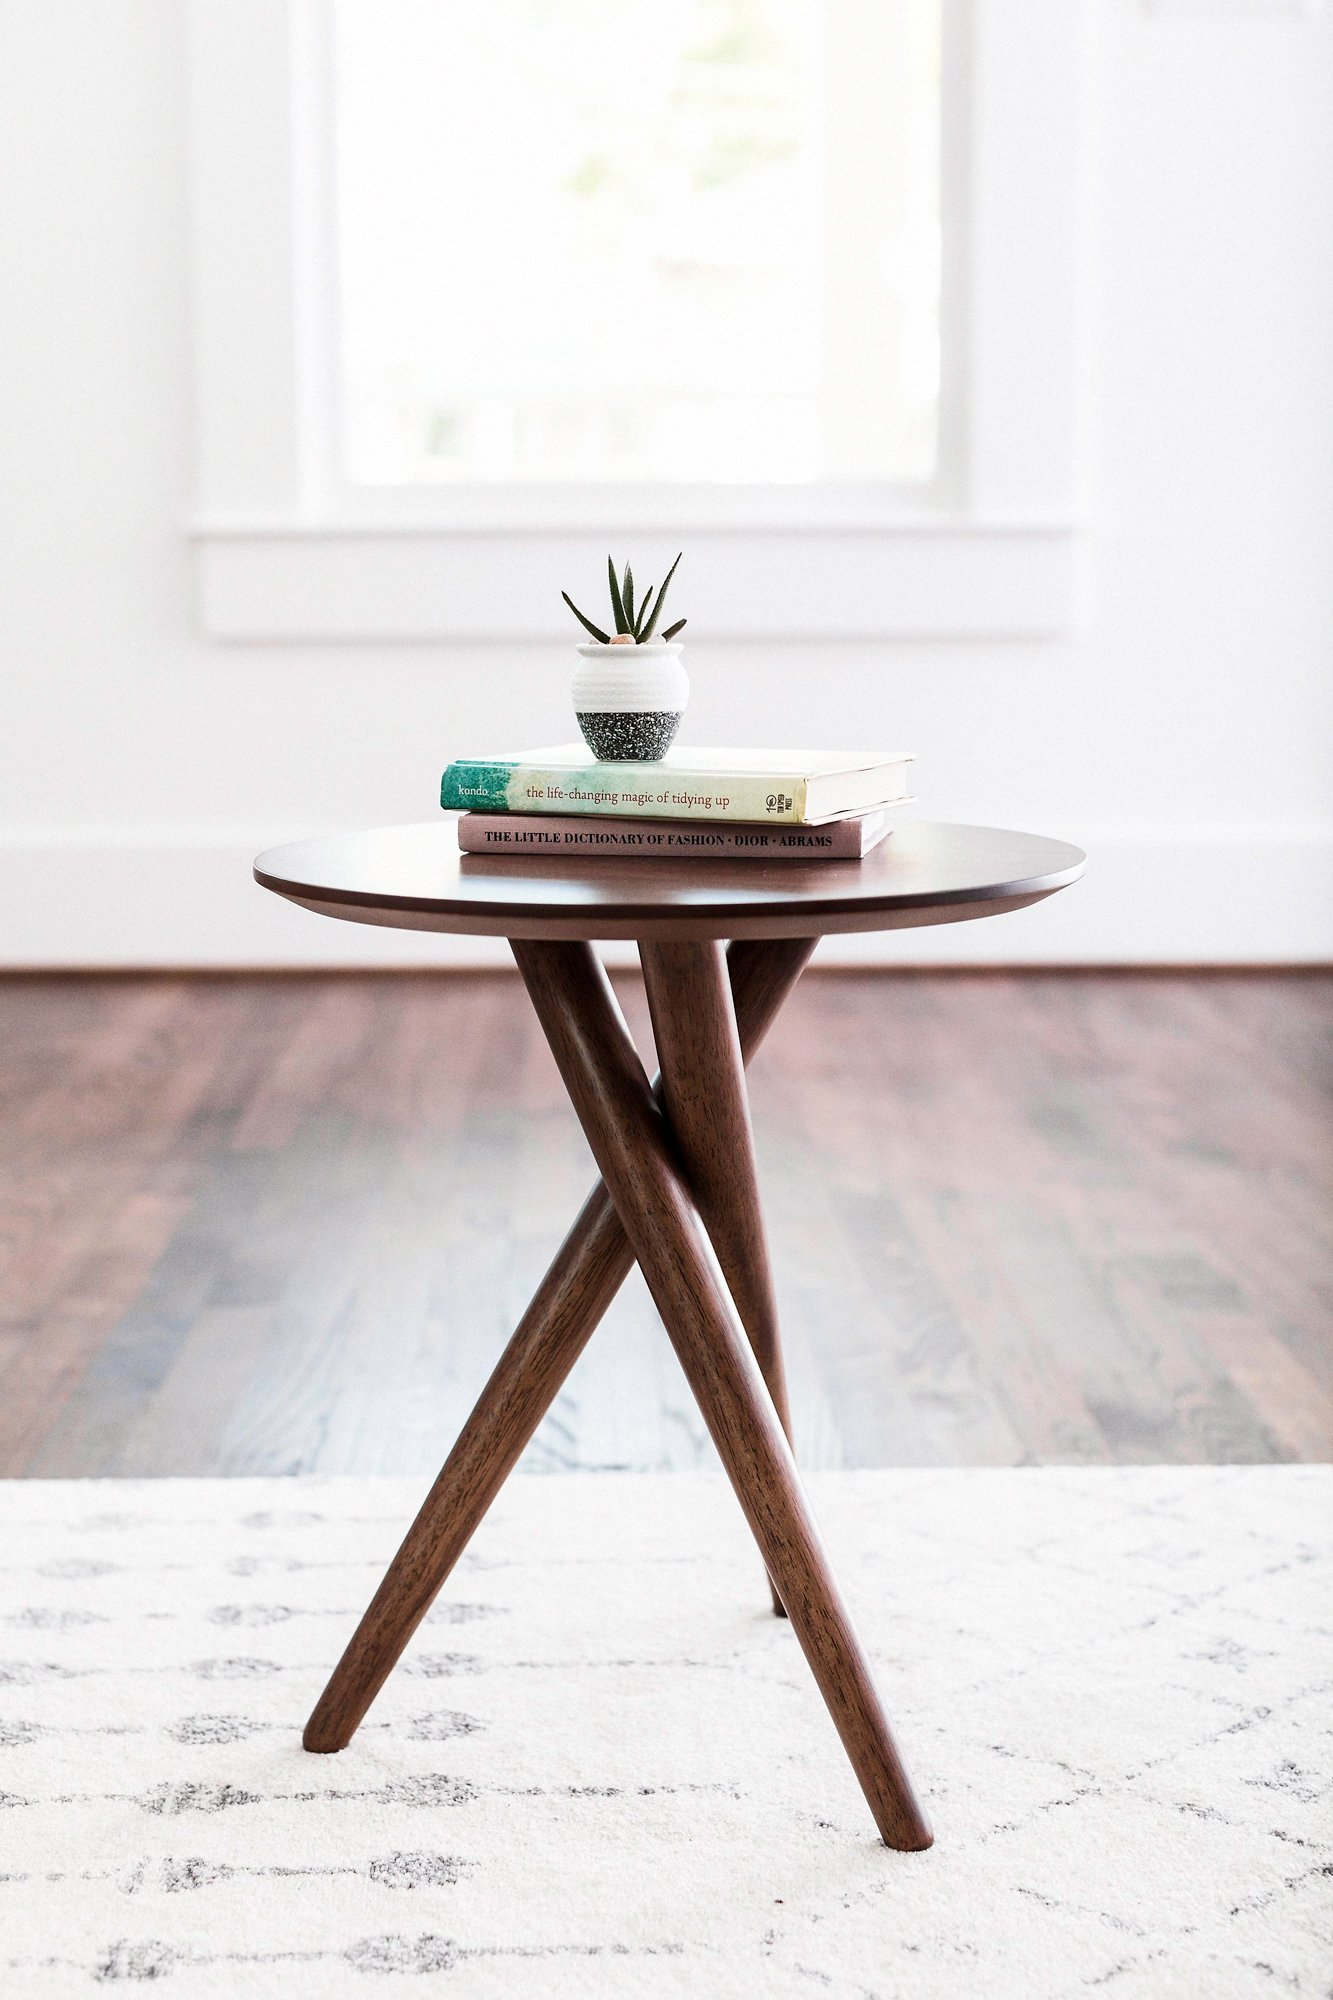 EDLOE FINCH - Gus Small End Table for Living Room - Mid Century Modern End Table - Round - Walnut Wood by Edloe Finch